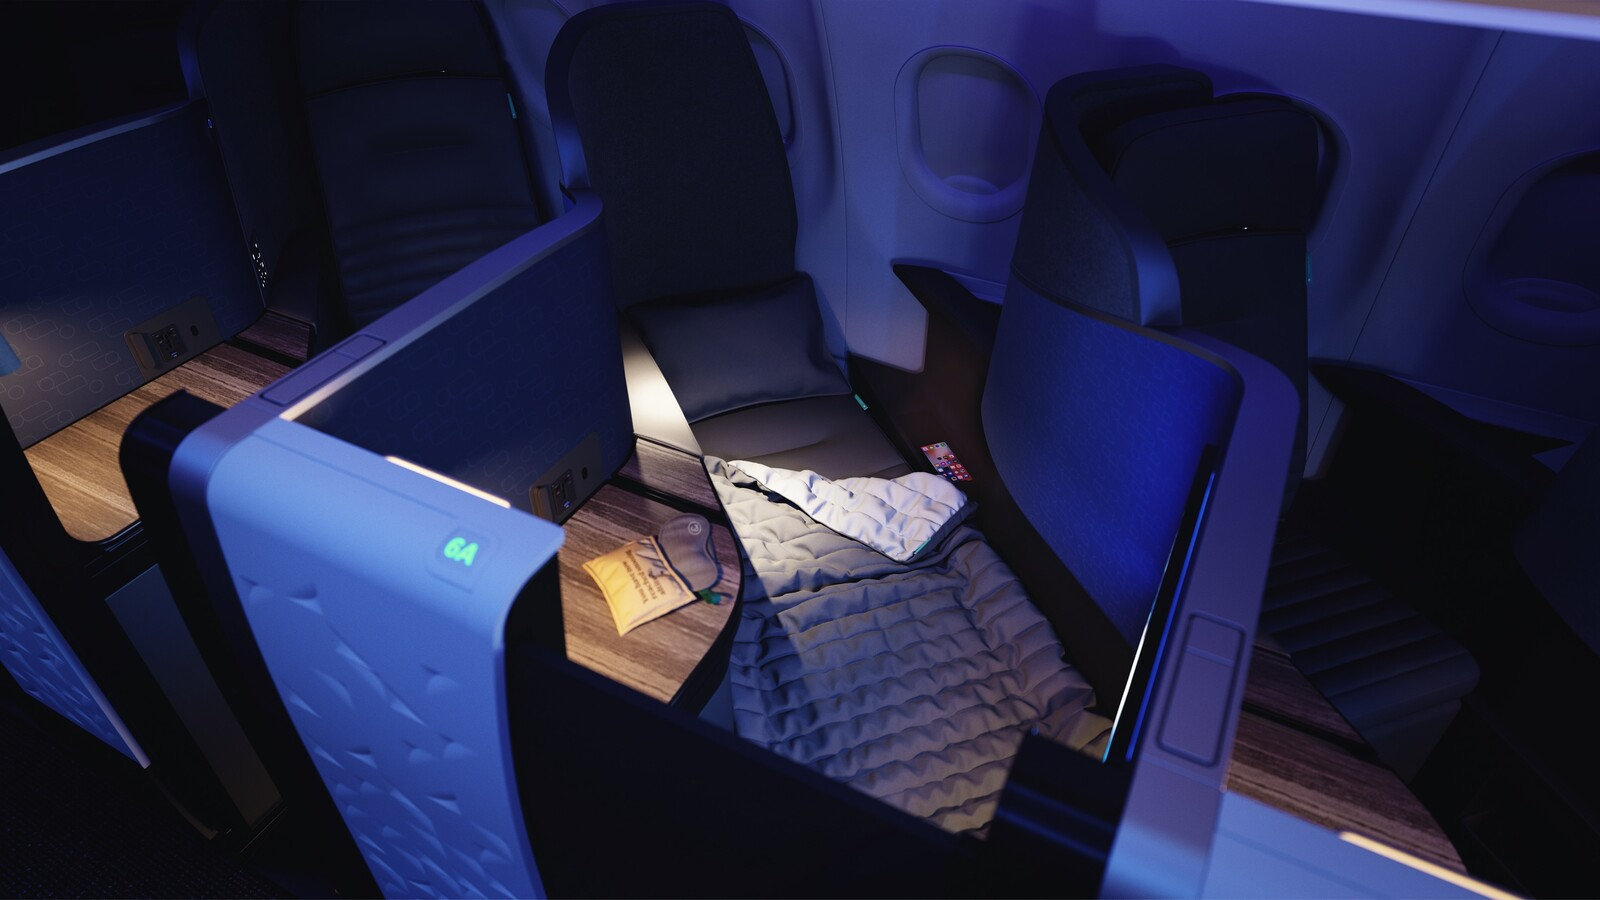 Jetblue mint suite tuft needle sleep experience